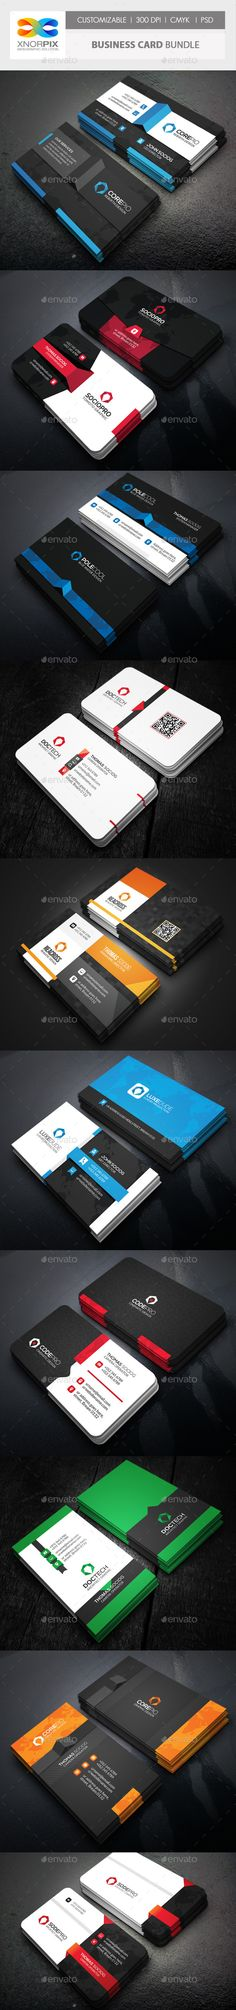 Business Card Bundle 10 in 1 - Corporate Business Card Template PSD. Download here: http://graphicriver.net/item/business-card-bundle-10-in-1/11938145?s_rank=1778&ref=yinkira